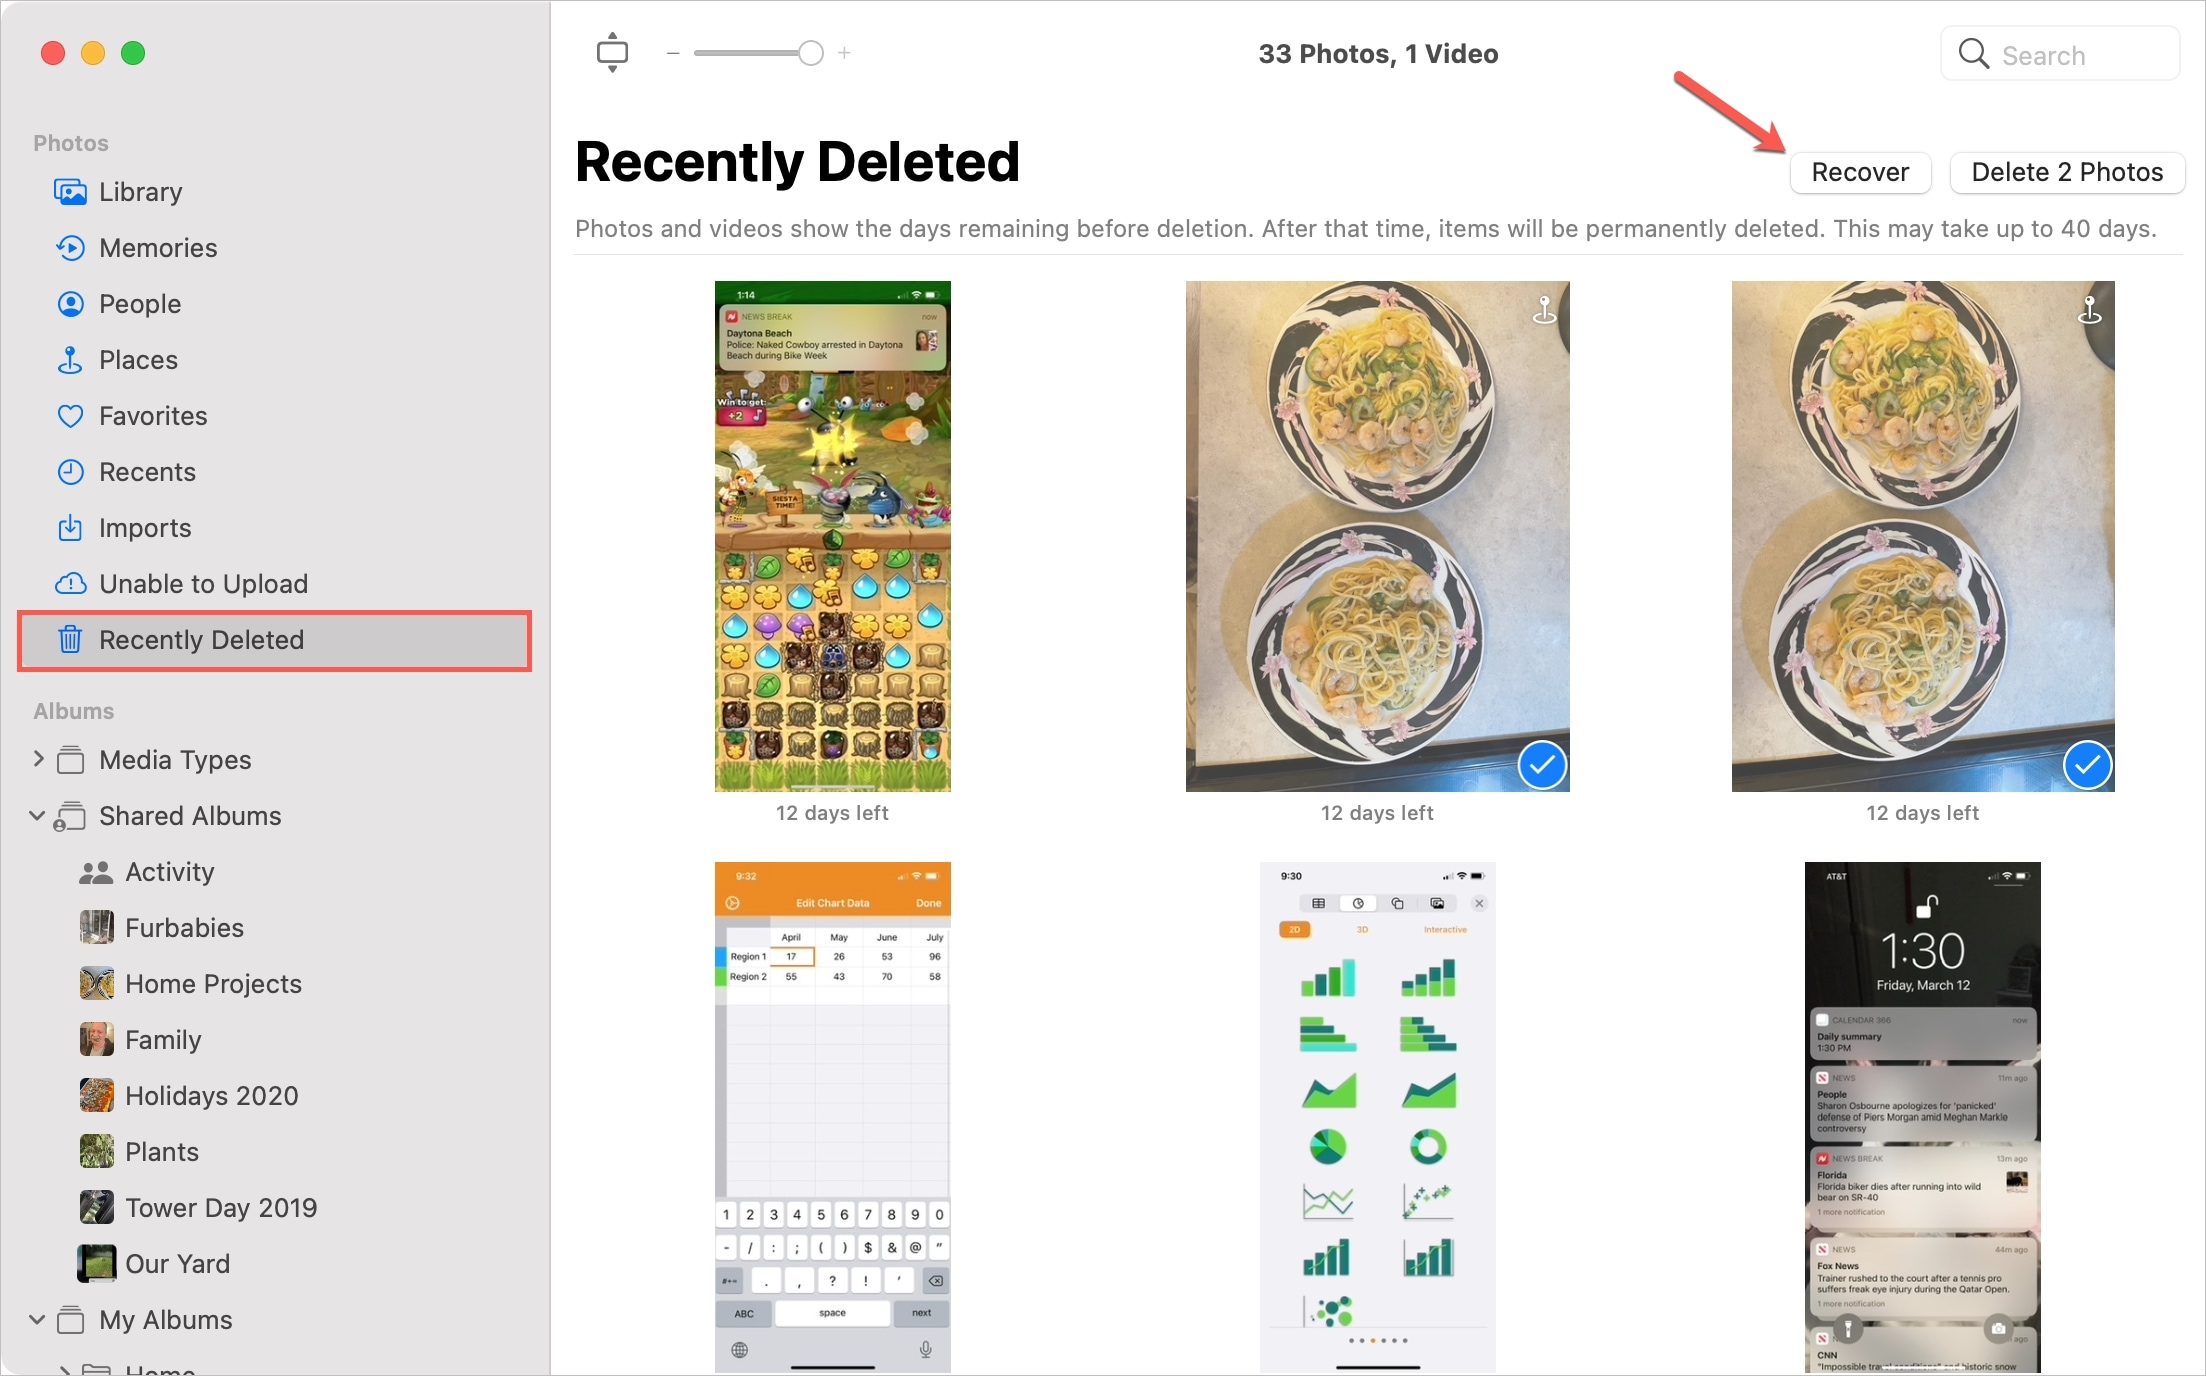 Photos Recently Deleted to Recover on Mac